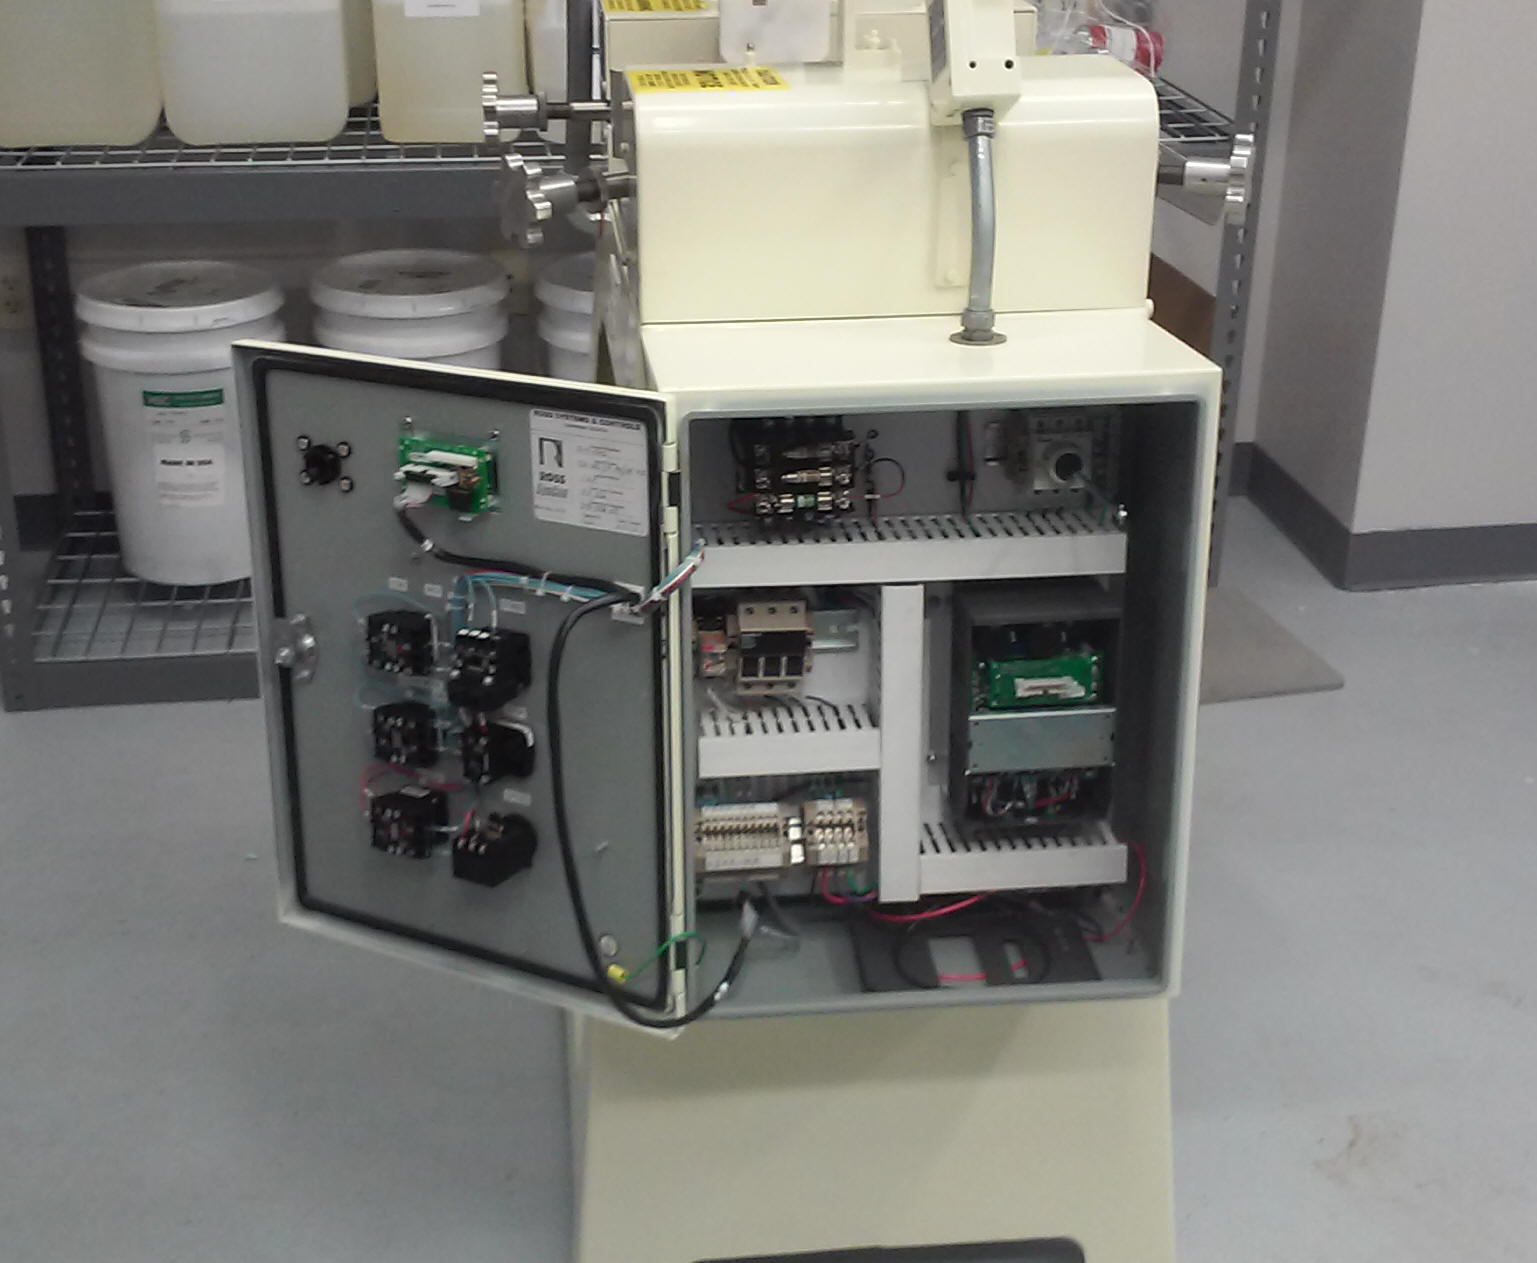 Custom Electrical Equipment Design And Fabrications For Any Purpose Breaker Box With A Federal Pacific Circuit Panel Stablok Specic Control Panels Buss Duct Power Switch Gear Steel Copper Aluminum Disconnect Safety Cabinets Welding